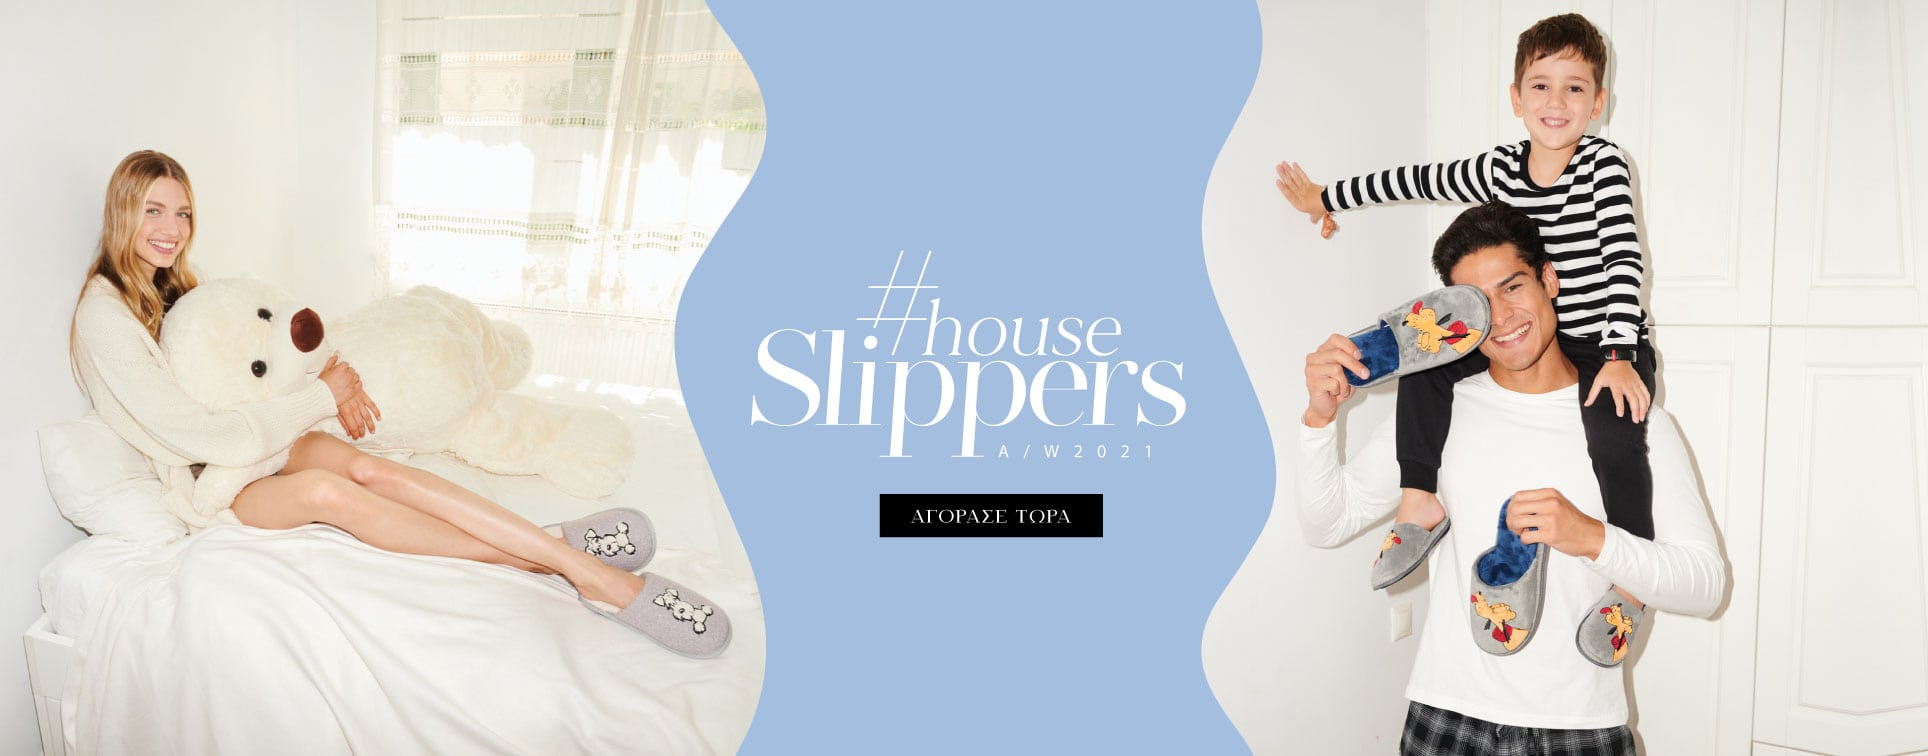 House Slippers,House_Slippers,House Slippers,House Slippers,4